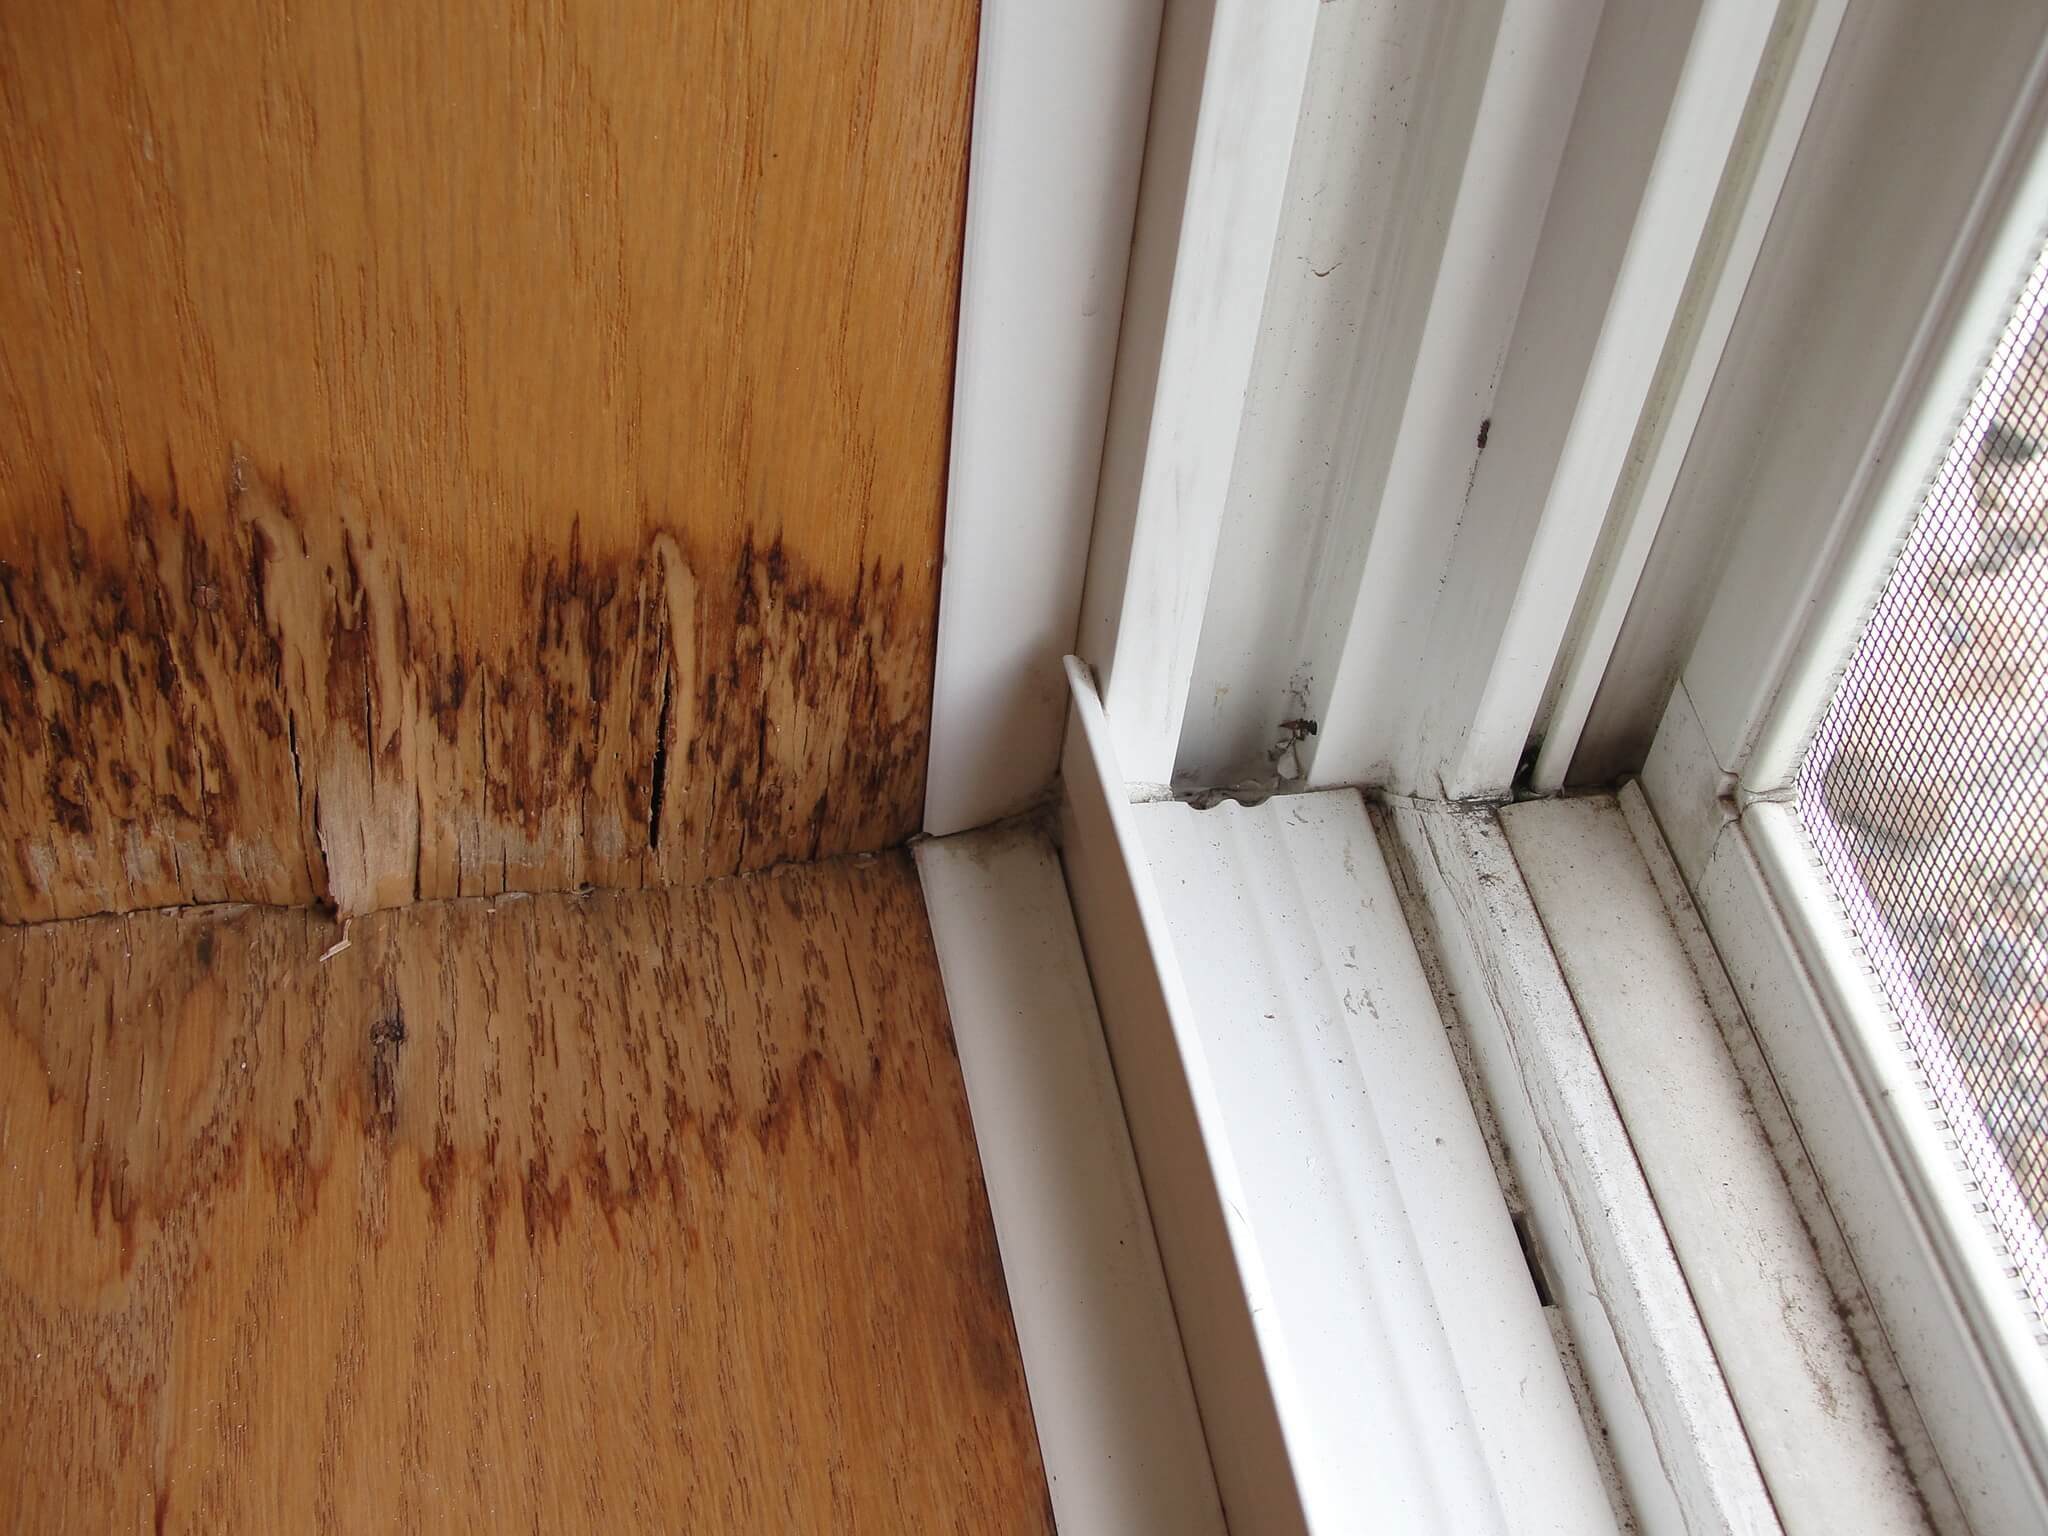 Water Staining At Window Sill From Major Leakage